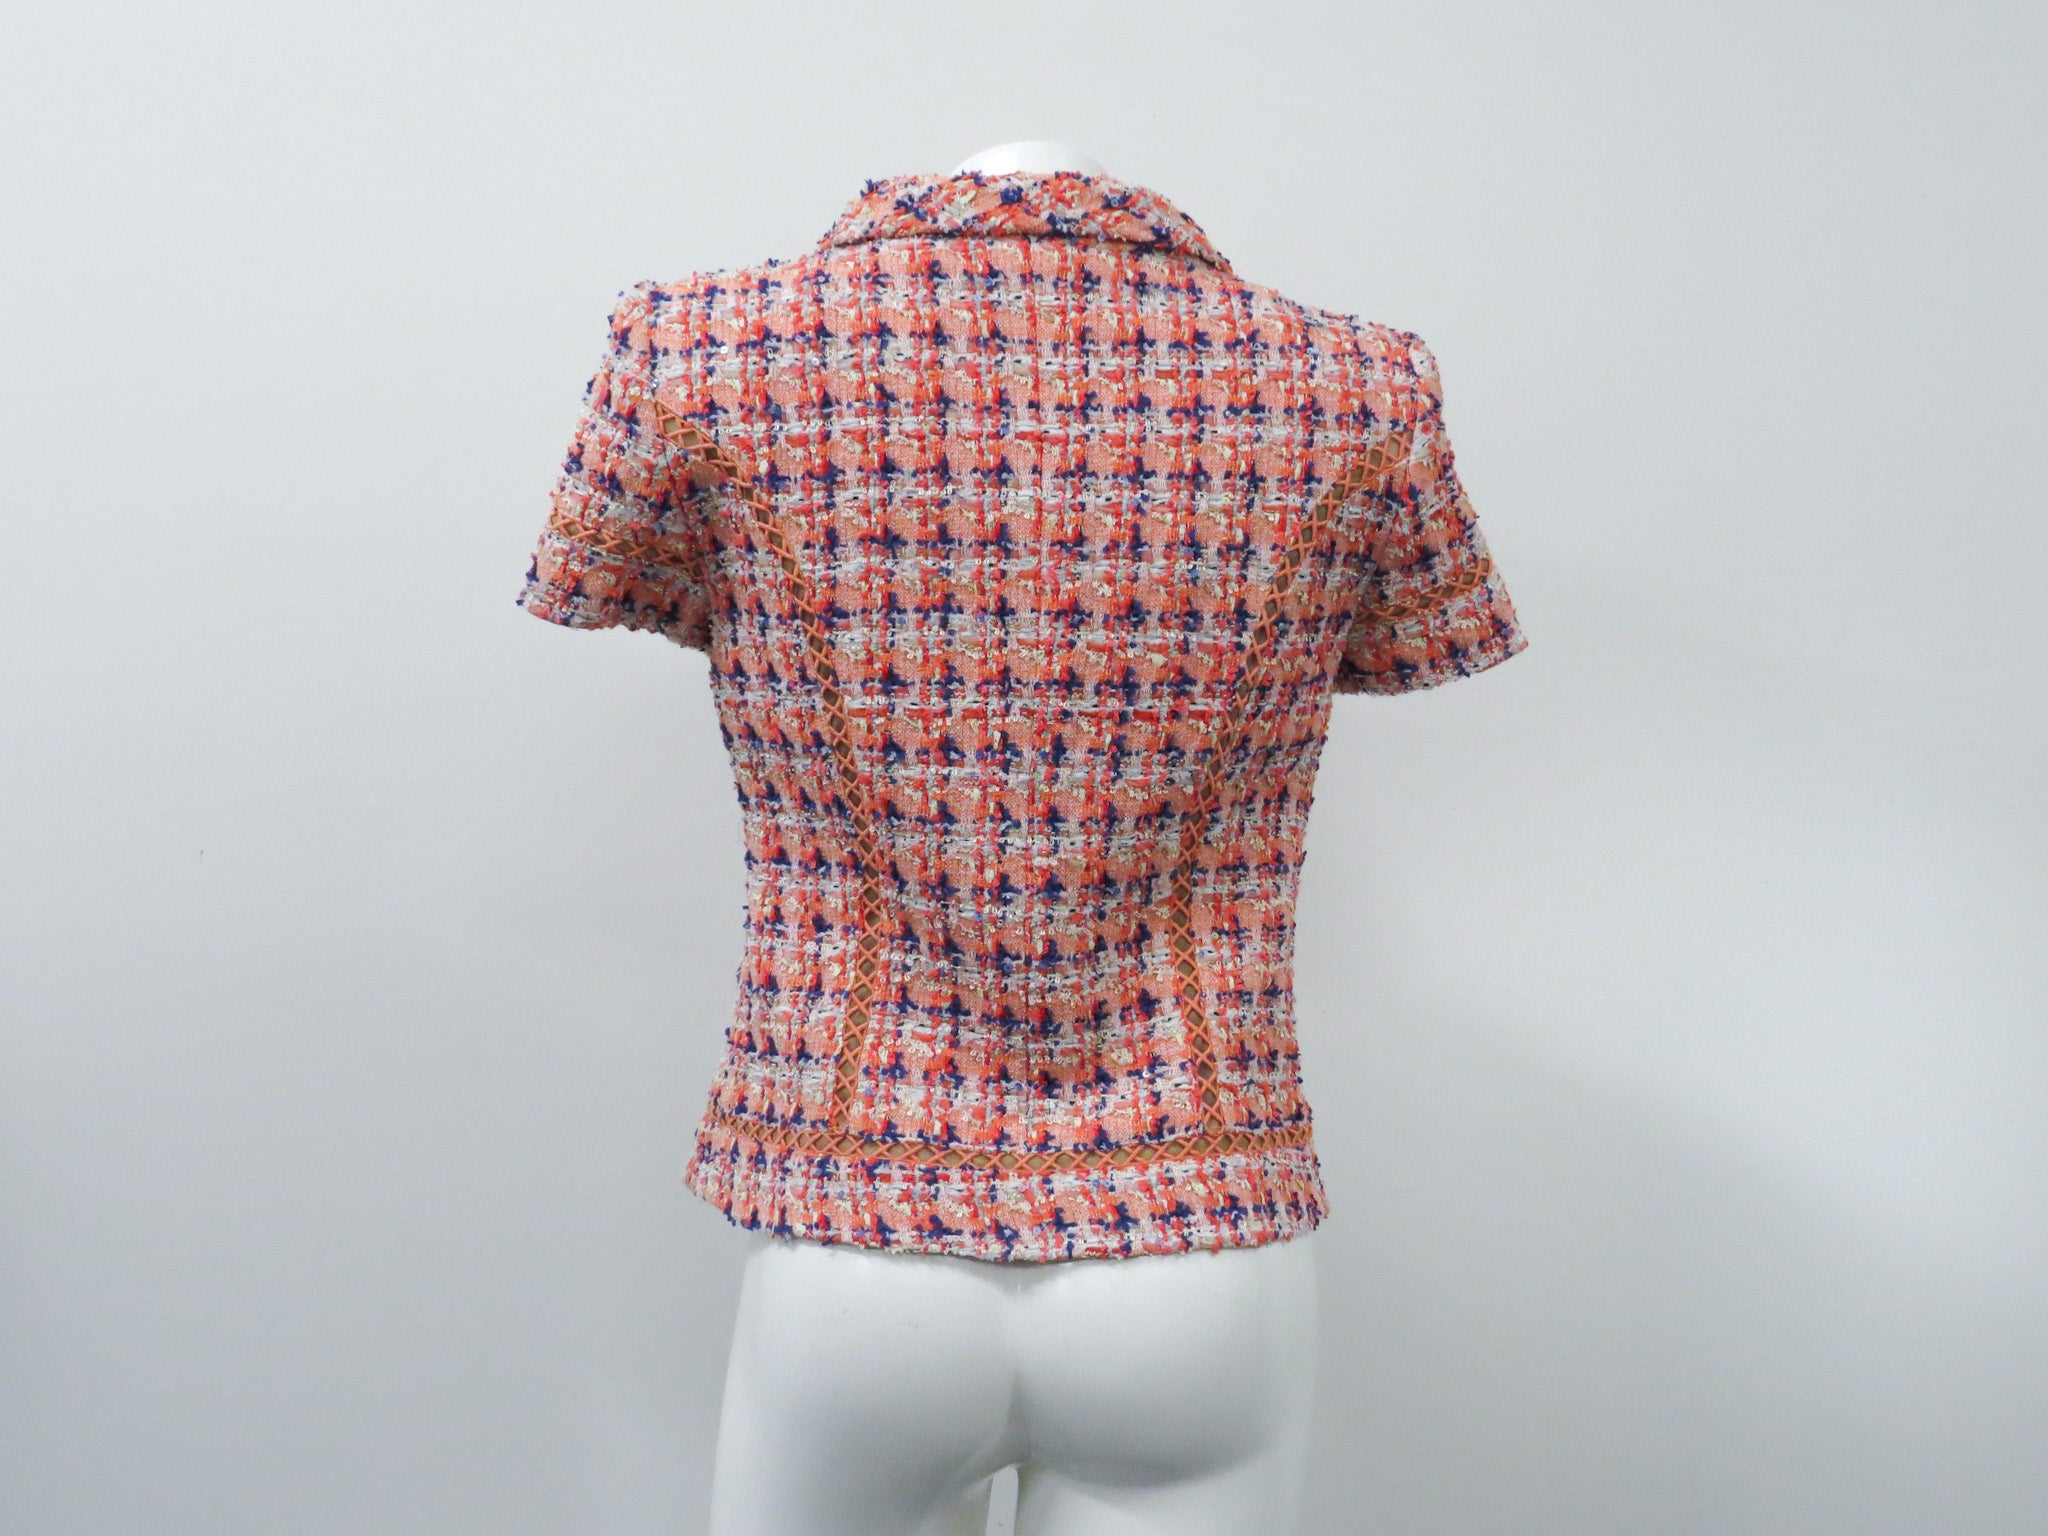 Short Sleeve Tweed Jacket Oscar De La Renta